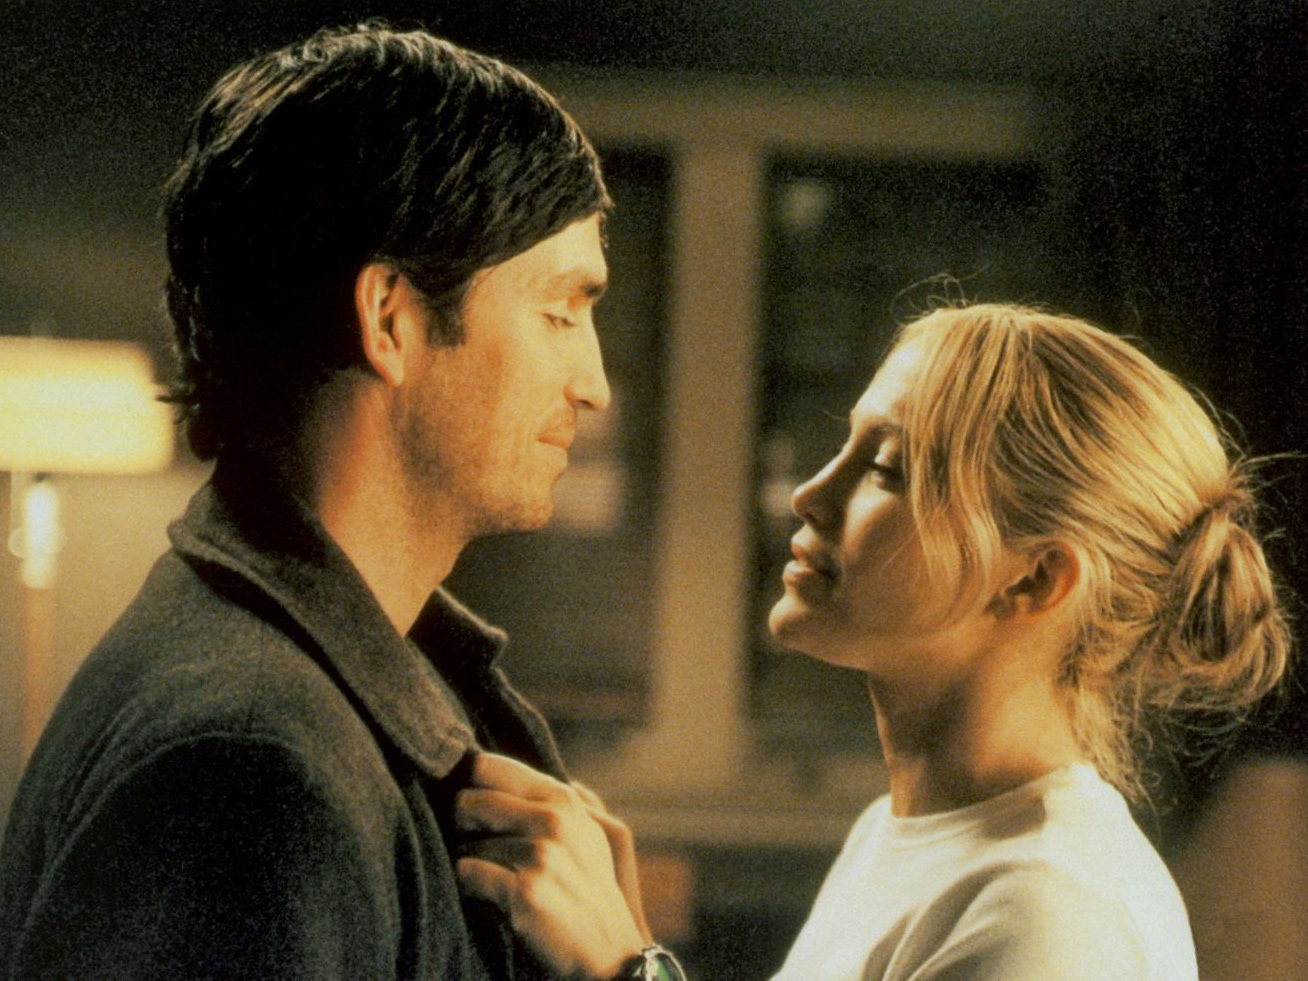 22. Angel Eyes (2001)